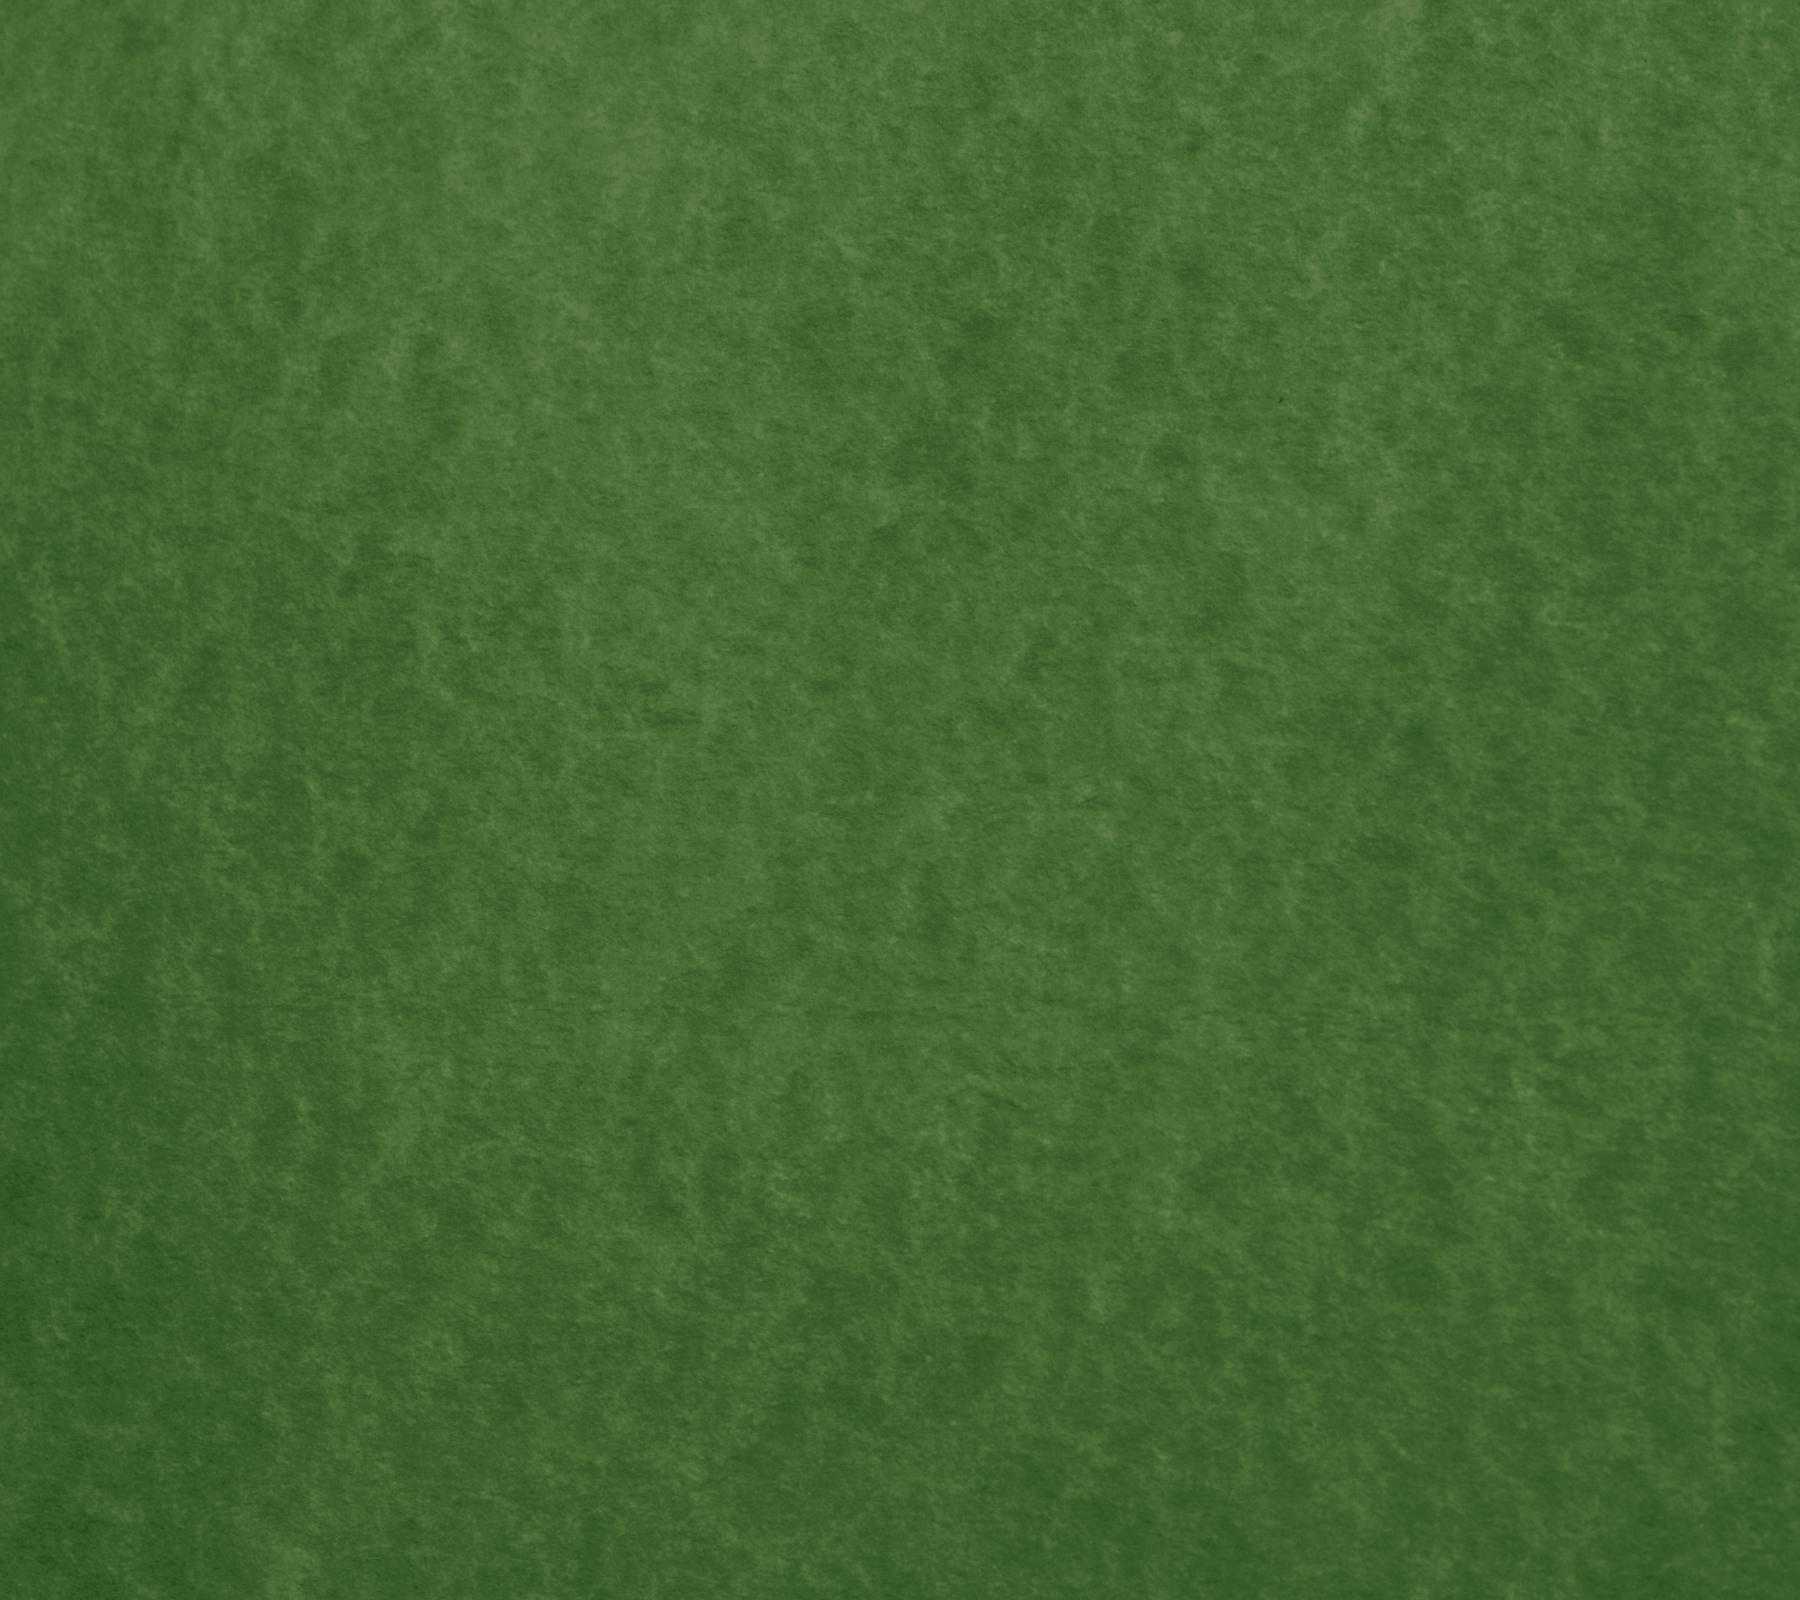 Pea Green Parchment Paper Background 1800x1600 Background